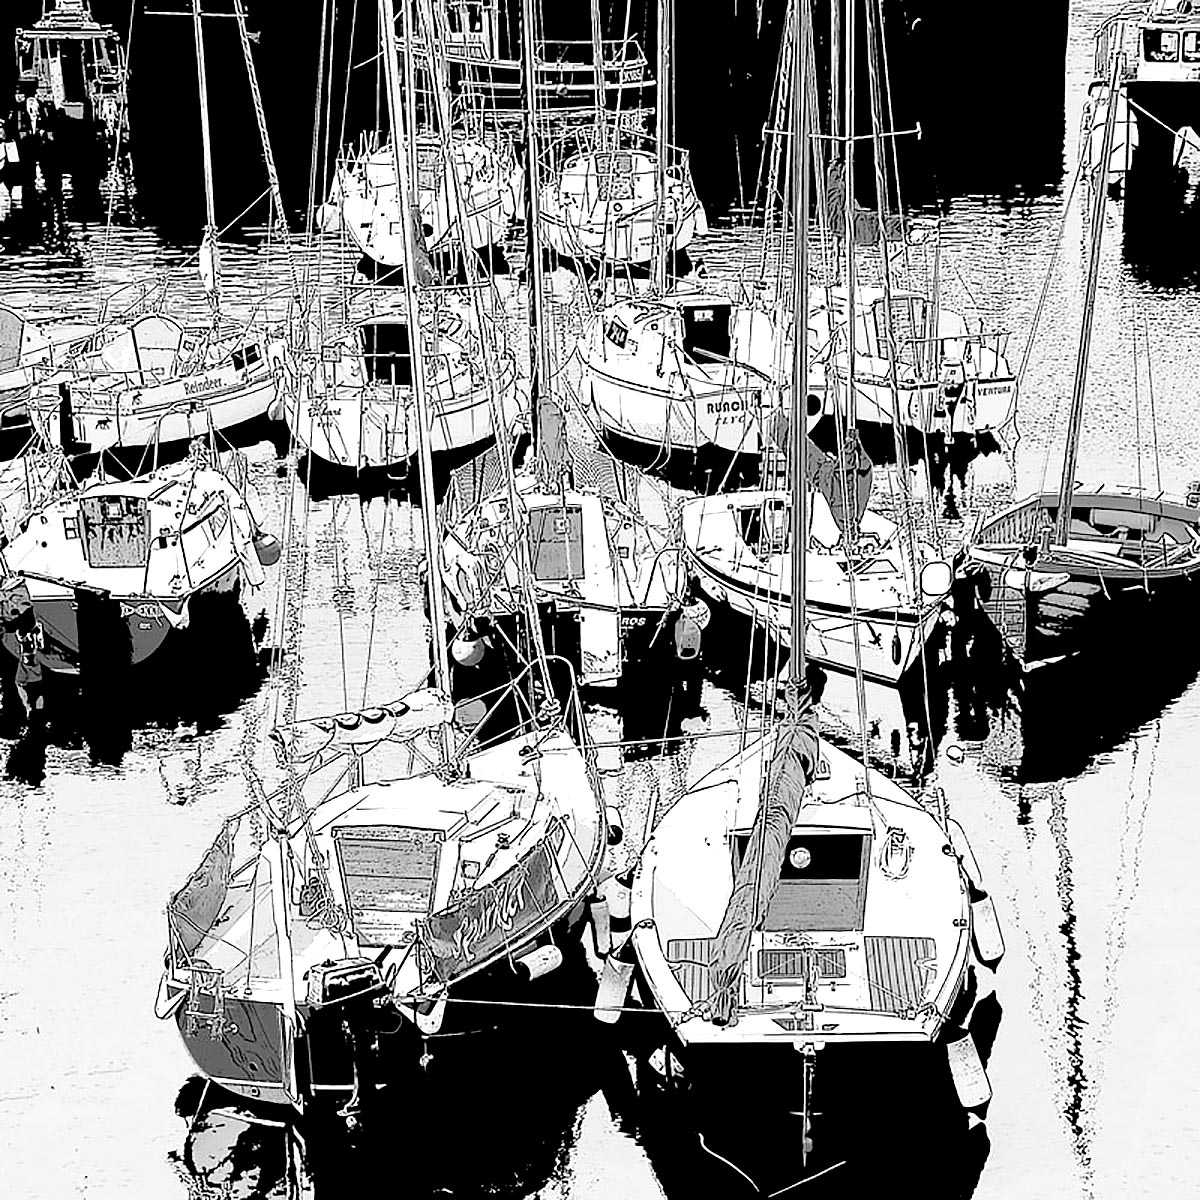 Colin M Bryce, 'East Coast Harbour', photographic print